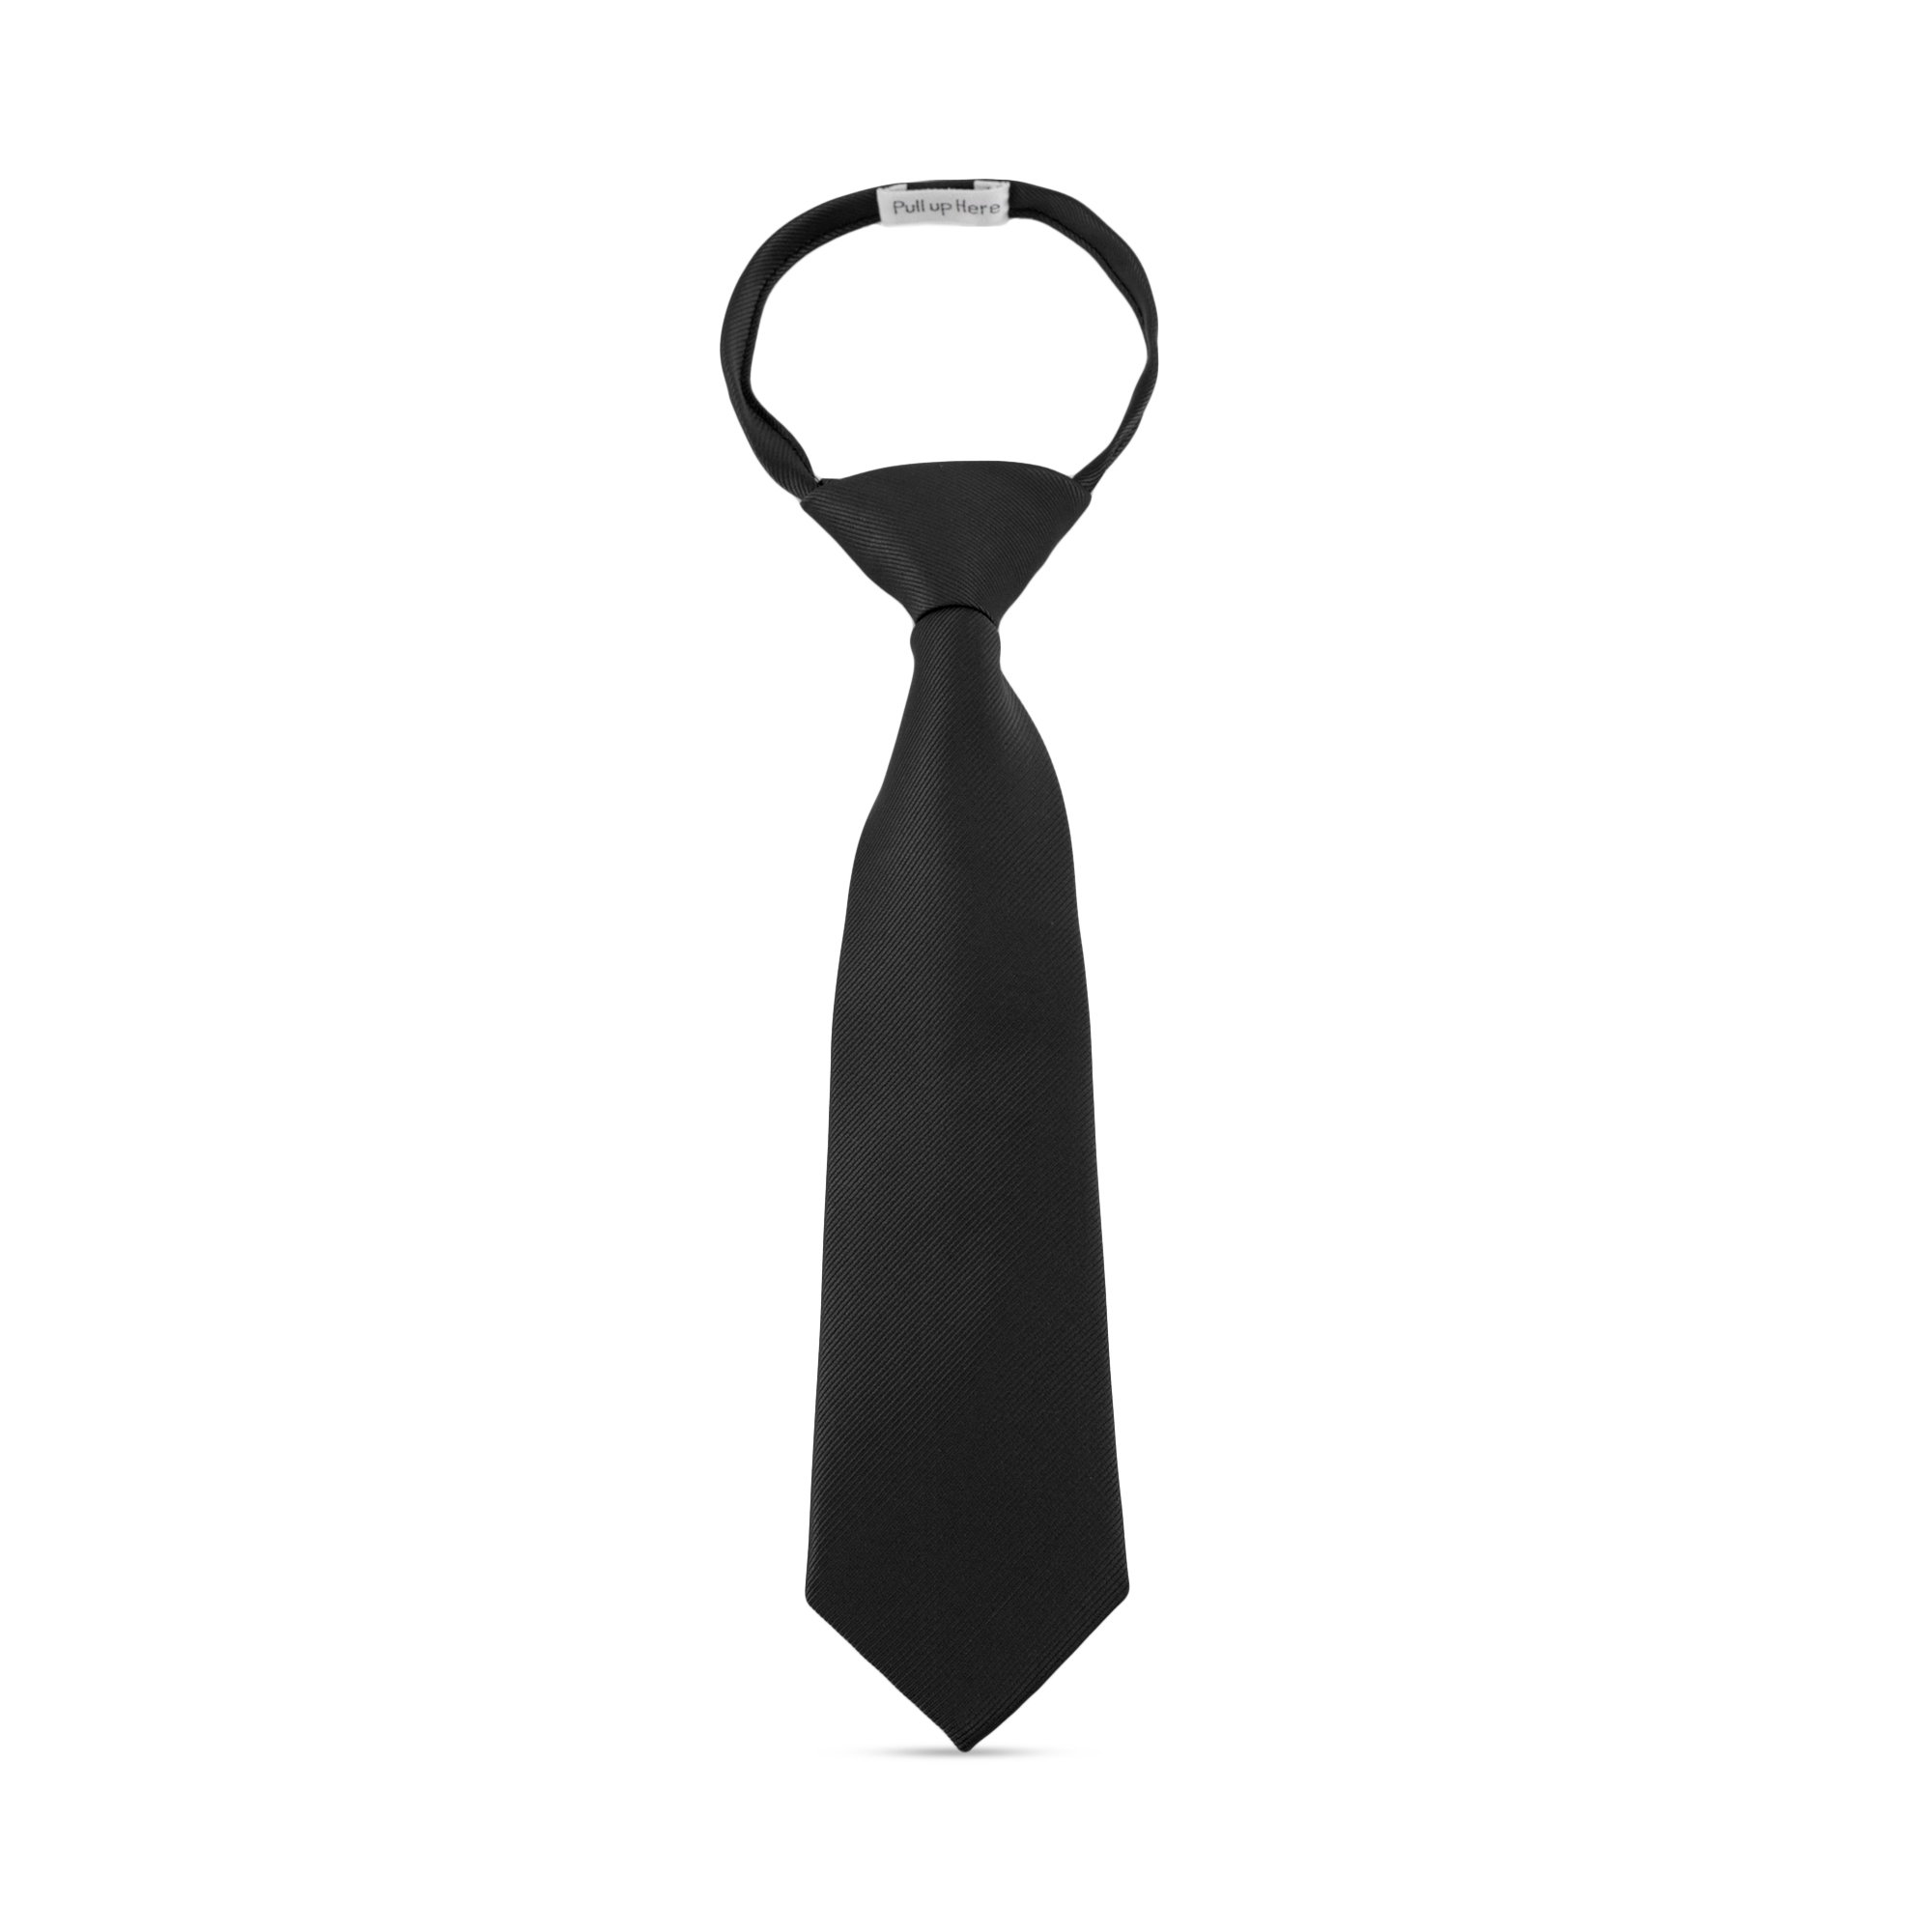 Handmade 11'' Zipper Ties For Boys Woven Boys Black Ties: For Kids Wedding Graduation